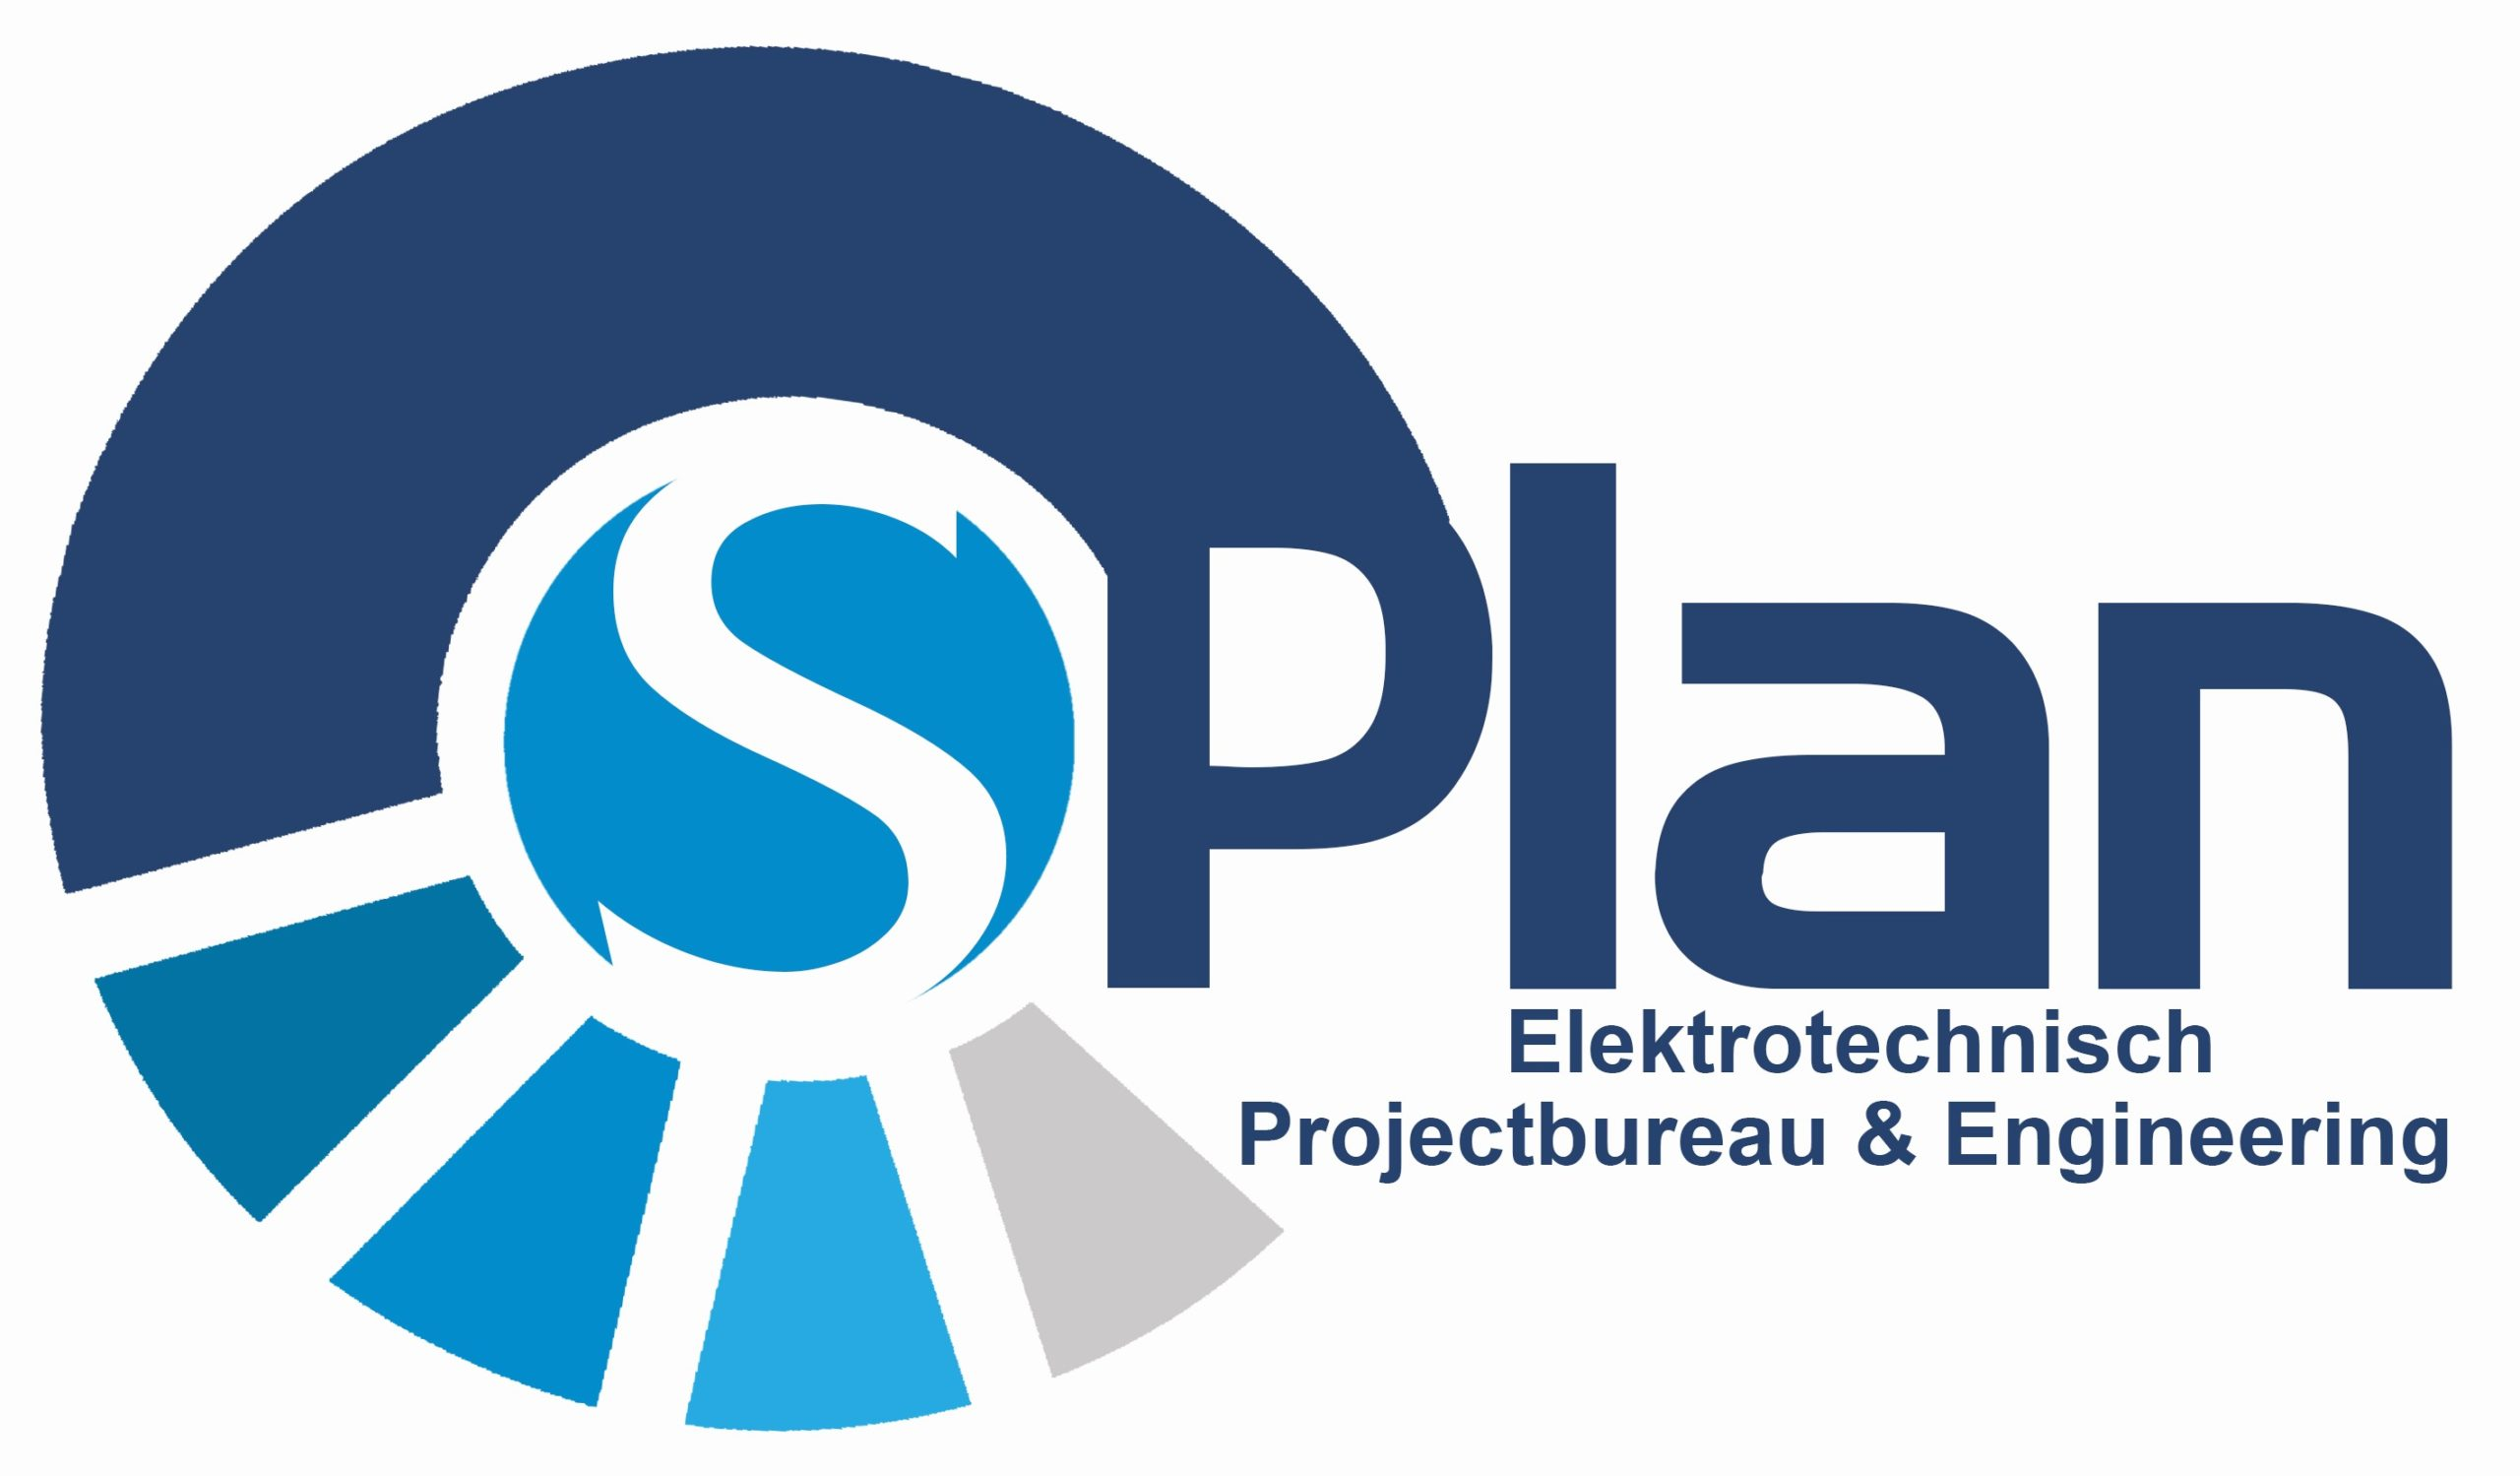 Splan Projectbureau & Engineering